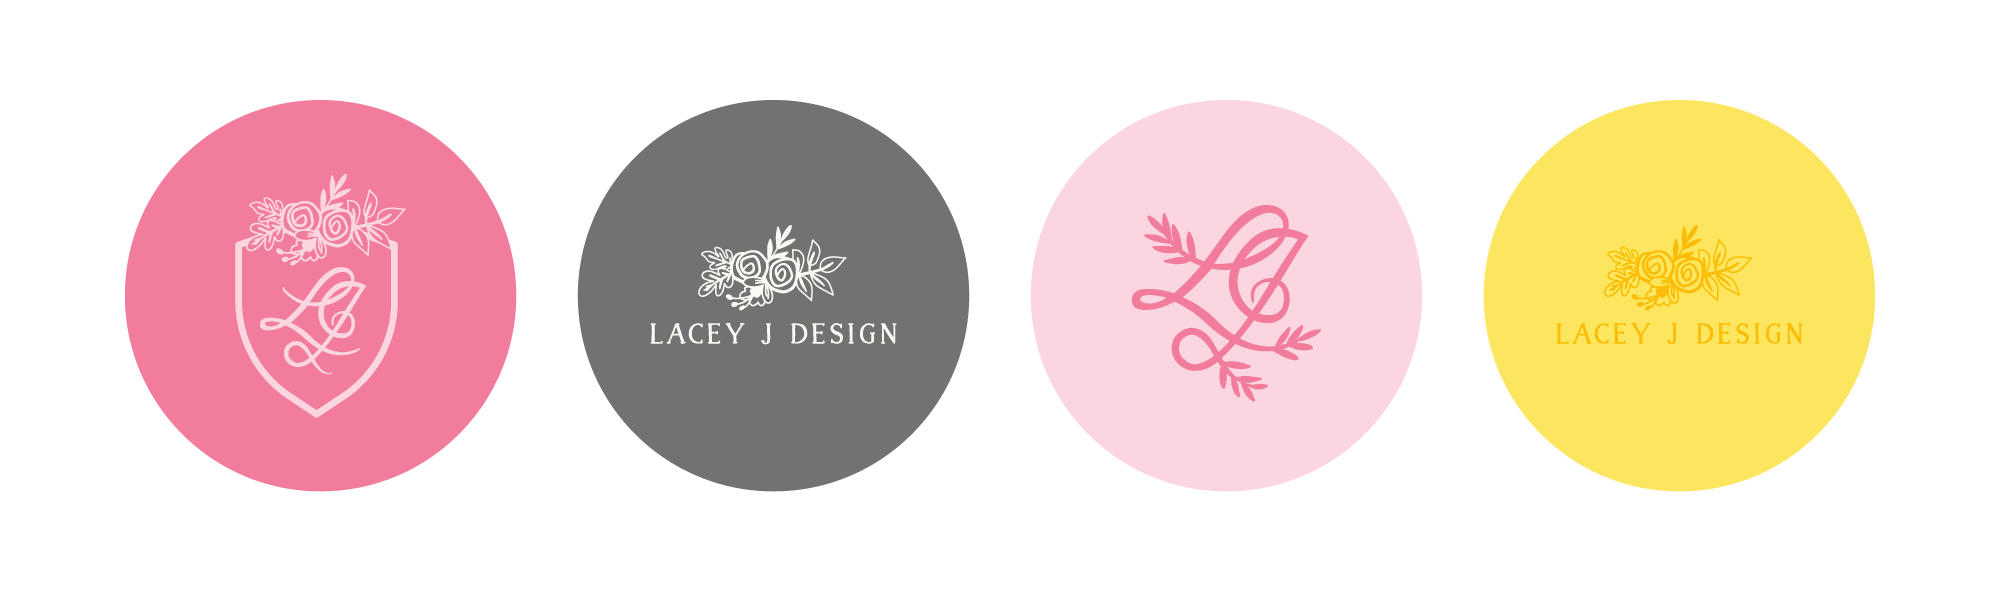 Lacey J Design brand stickers | Collaboration between Spruce Rd and Pace Creative Design Studio